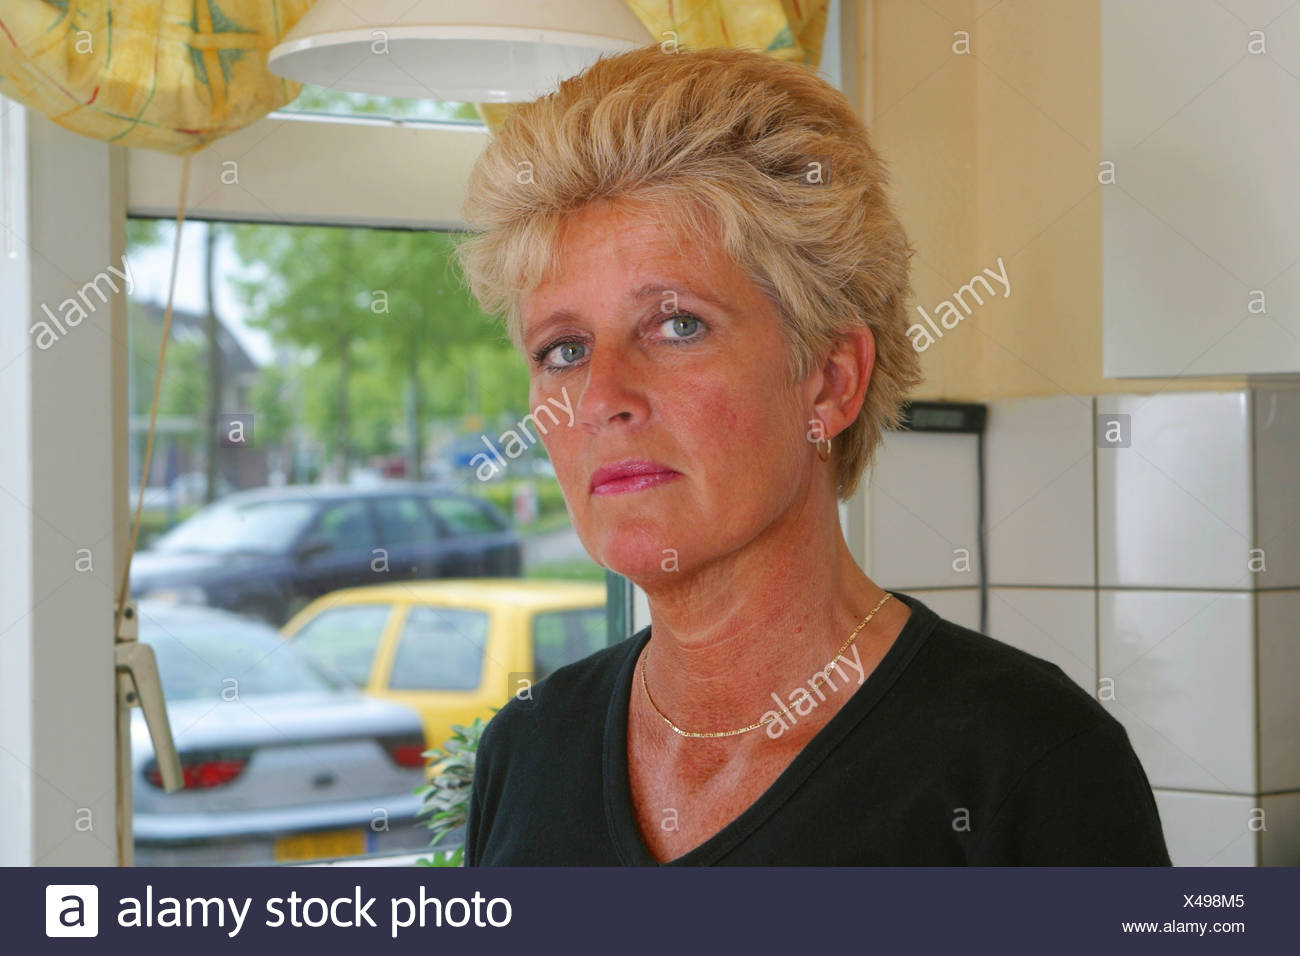 Unhappy mid aged woman in kitchen headshot - Stock Image